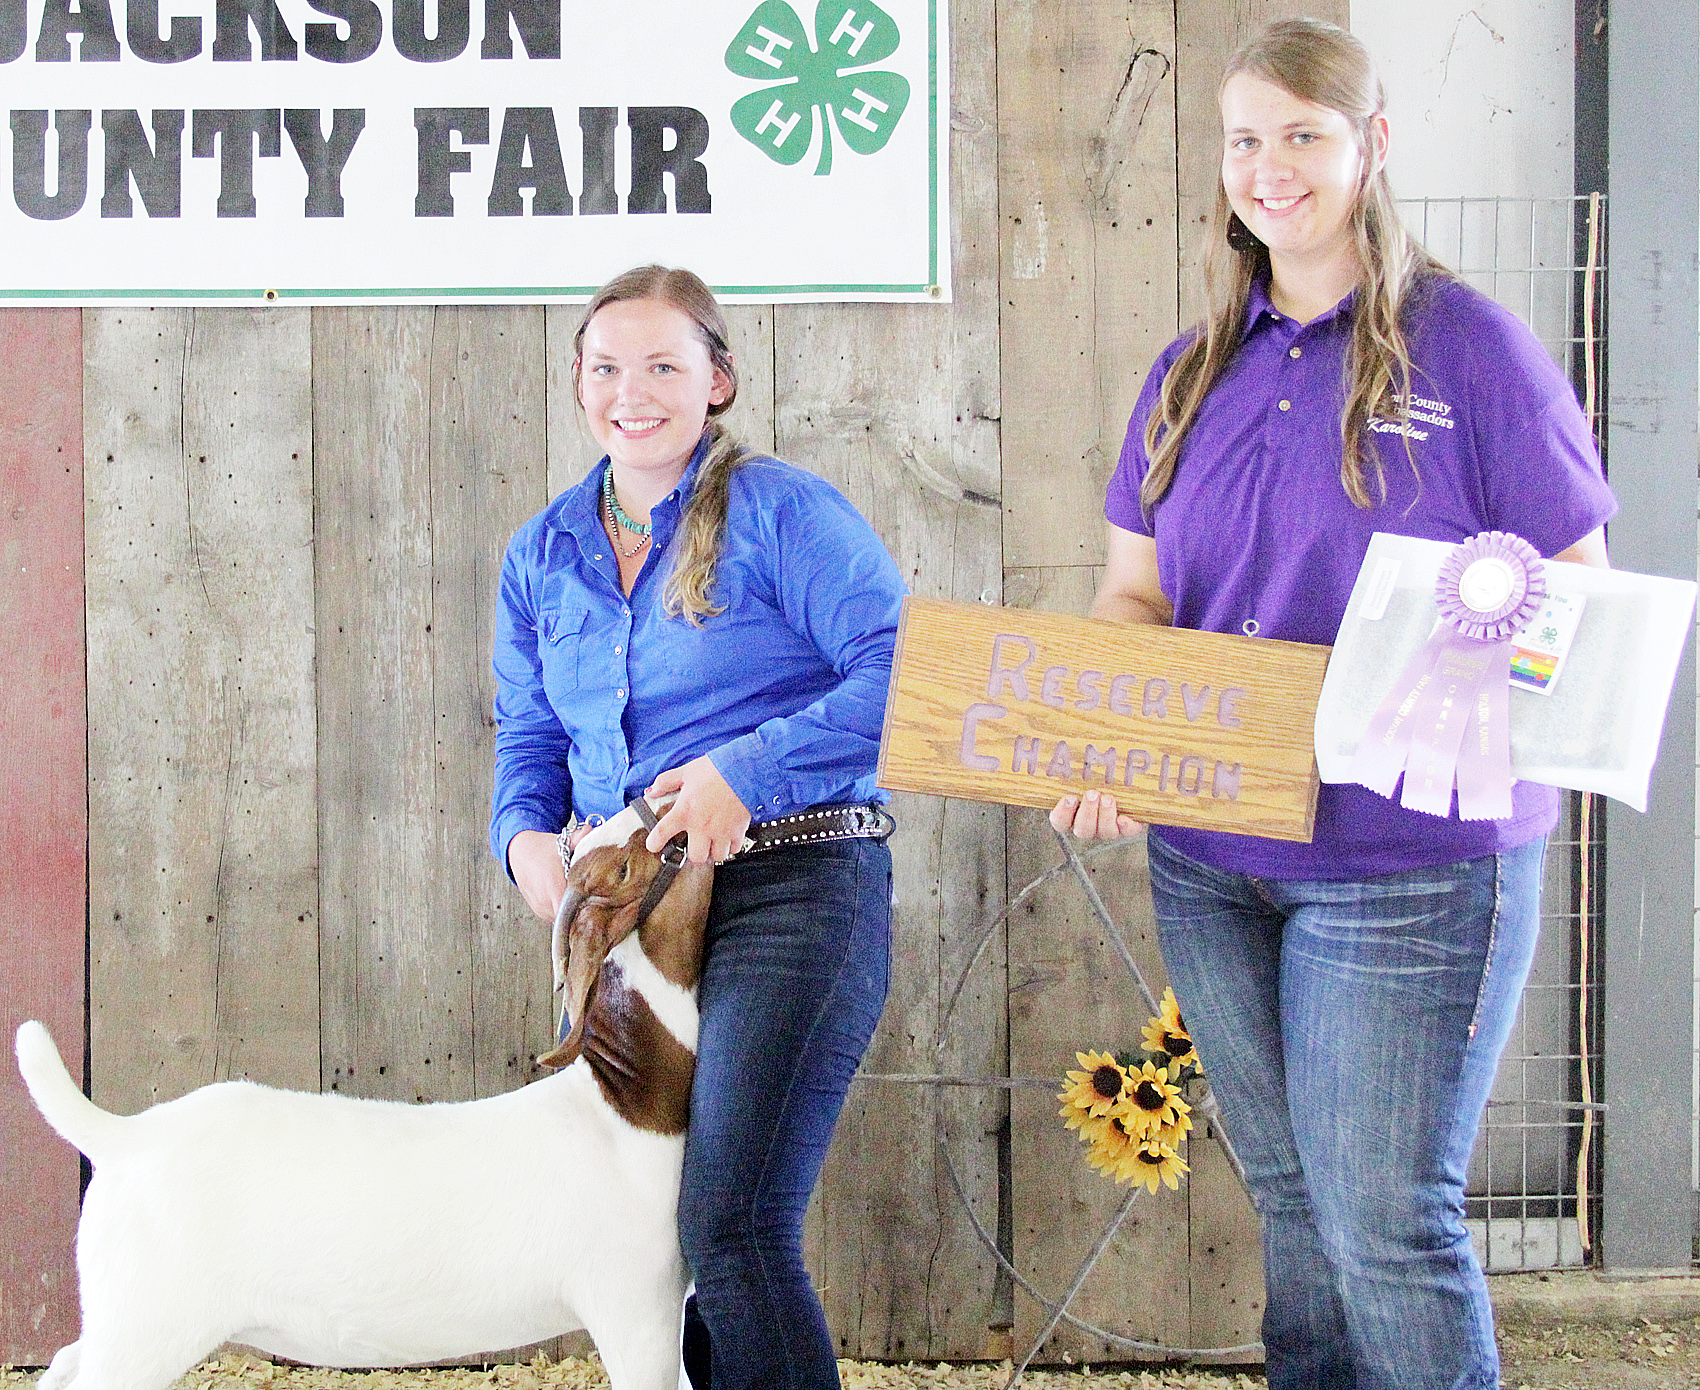 Jerilyn Nelson of the Pleasant Valley Rustlers 4-H Club showed the Reserve Grand Champion overall doe at the 2020 Jackson County Fair.